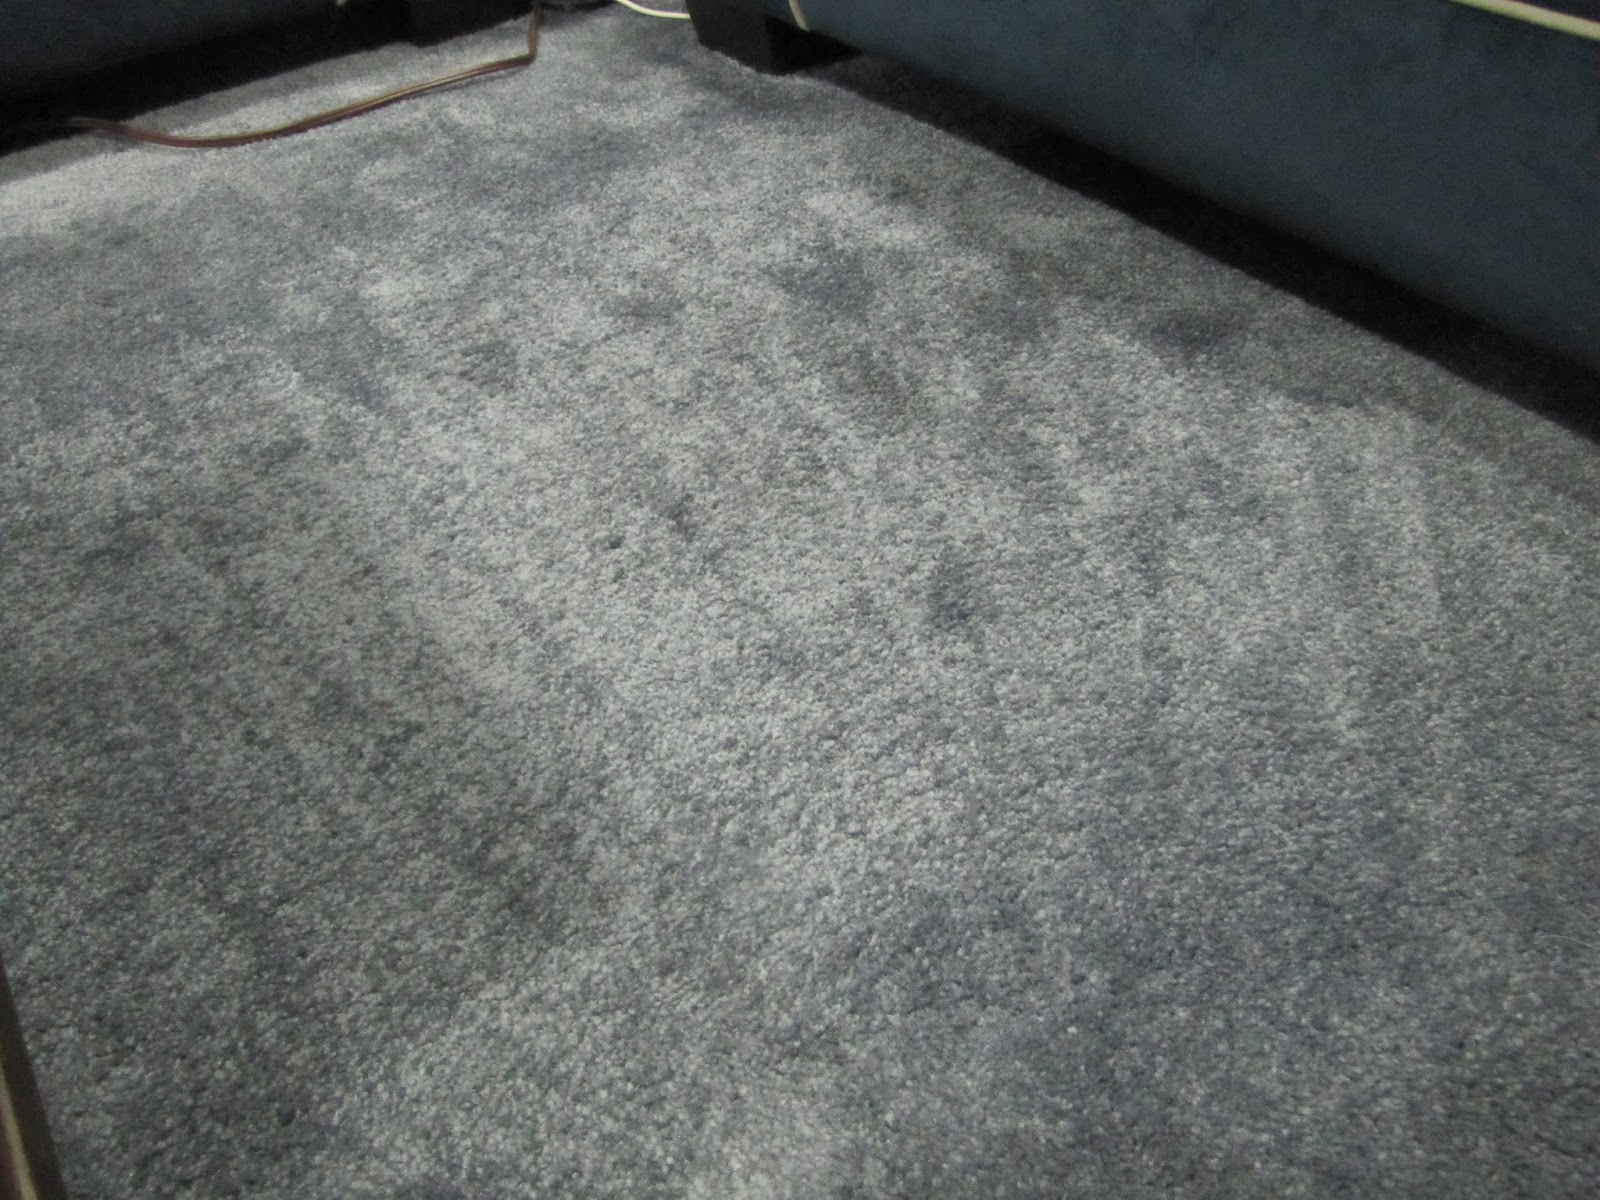 Genesis 950 Cleaning Tips And Tricks Diy Carpet Cleaning